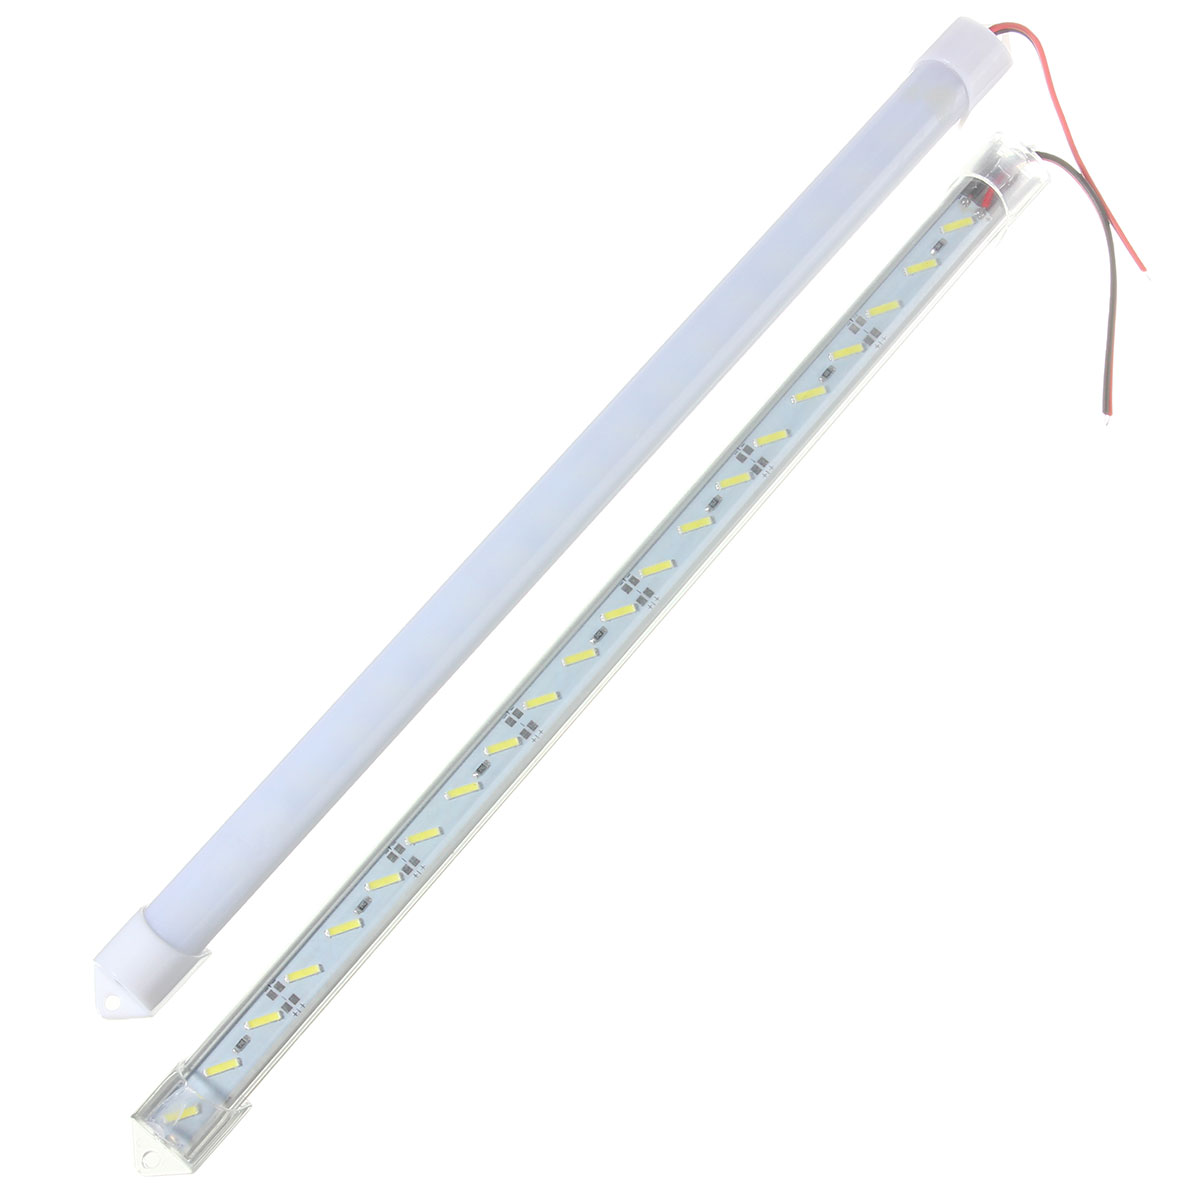 30cm U shell Profile 8520 LED rigid Strip 36leds led strip bar for cabinet closet kitchen with cover double chip supper bright